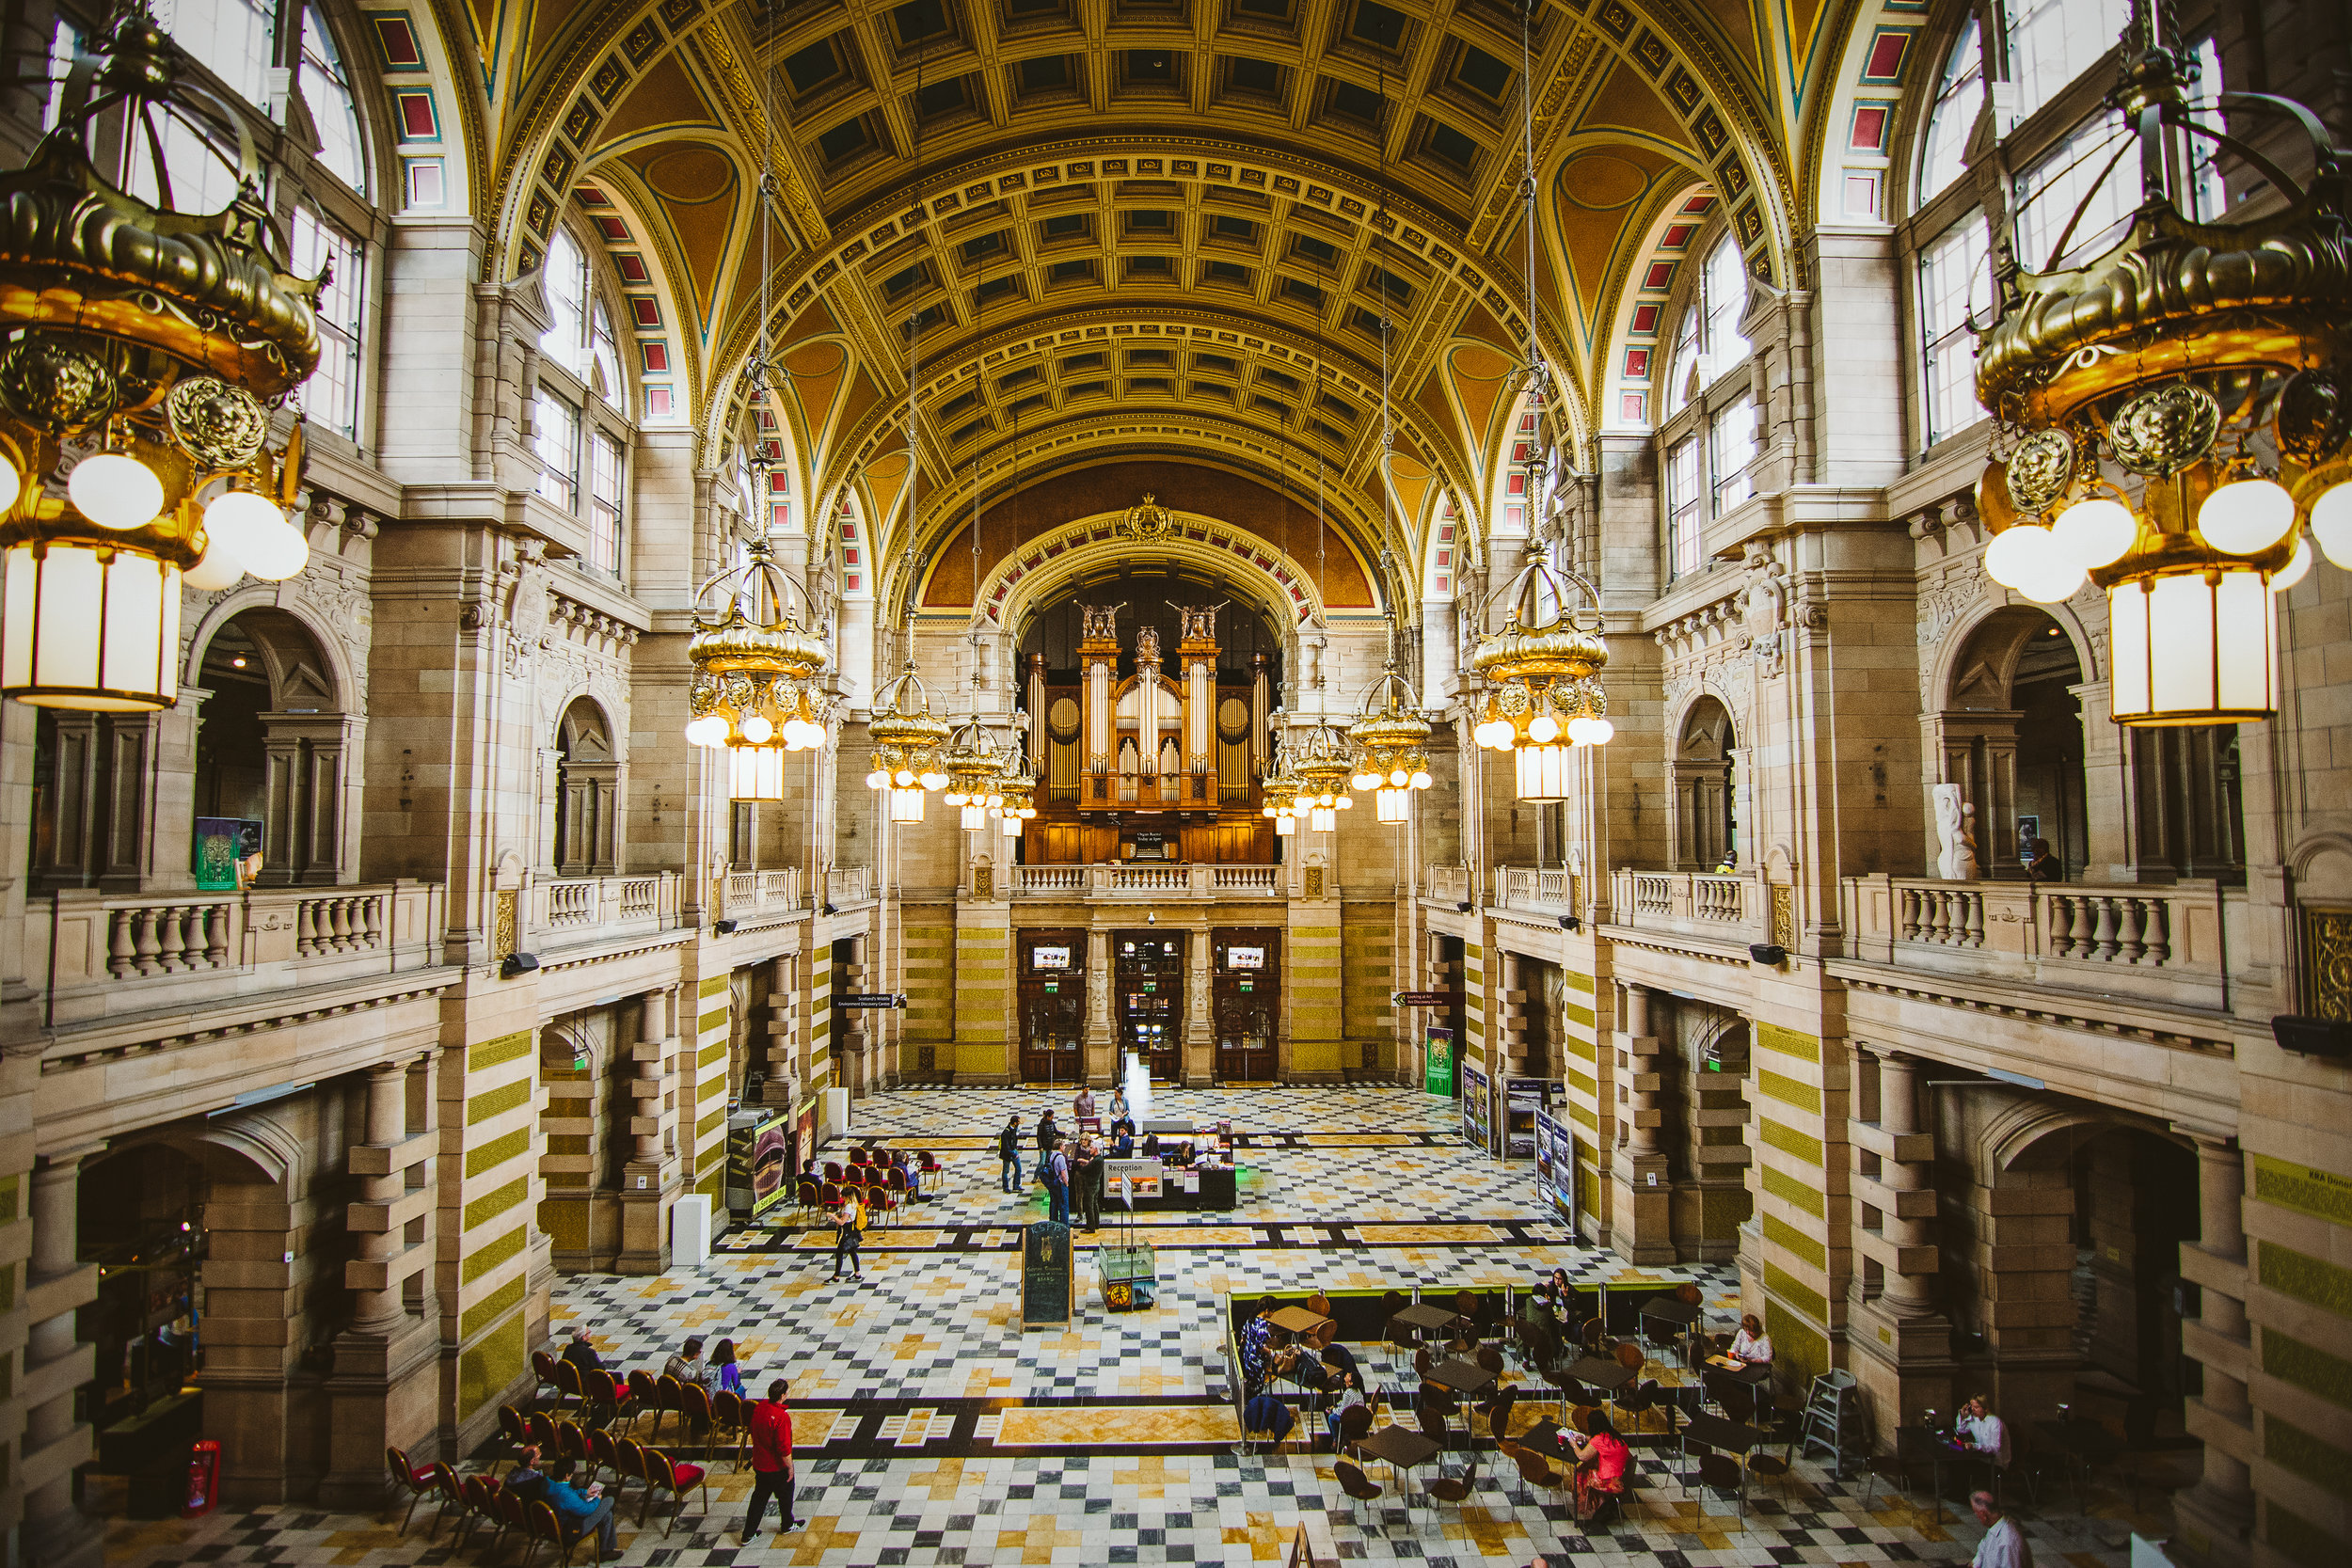 The main foyer of the Kelvingrove Museum. There is quite a bit to explore, even for people who aren't that into art. Even so, the Dali painting was quite mesmerising.